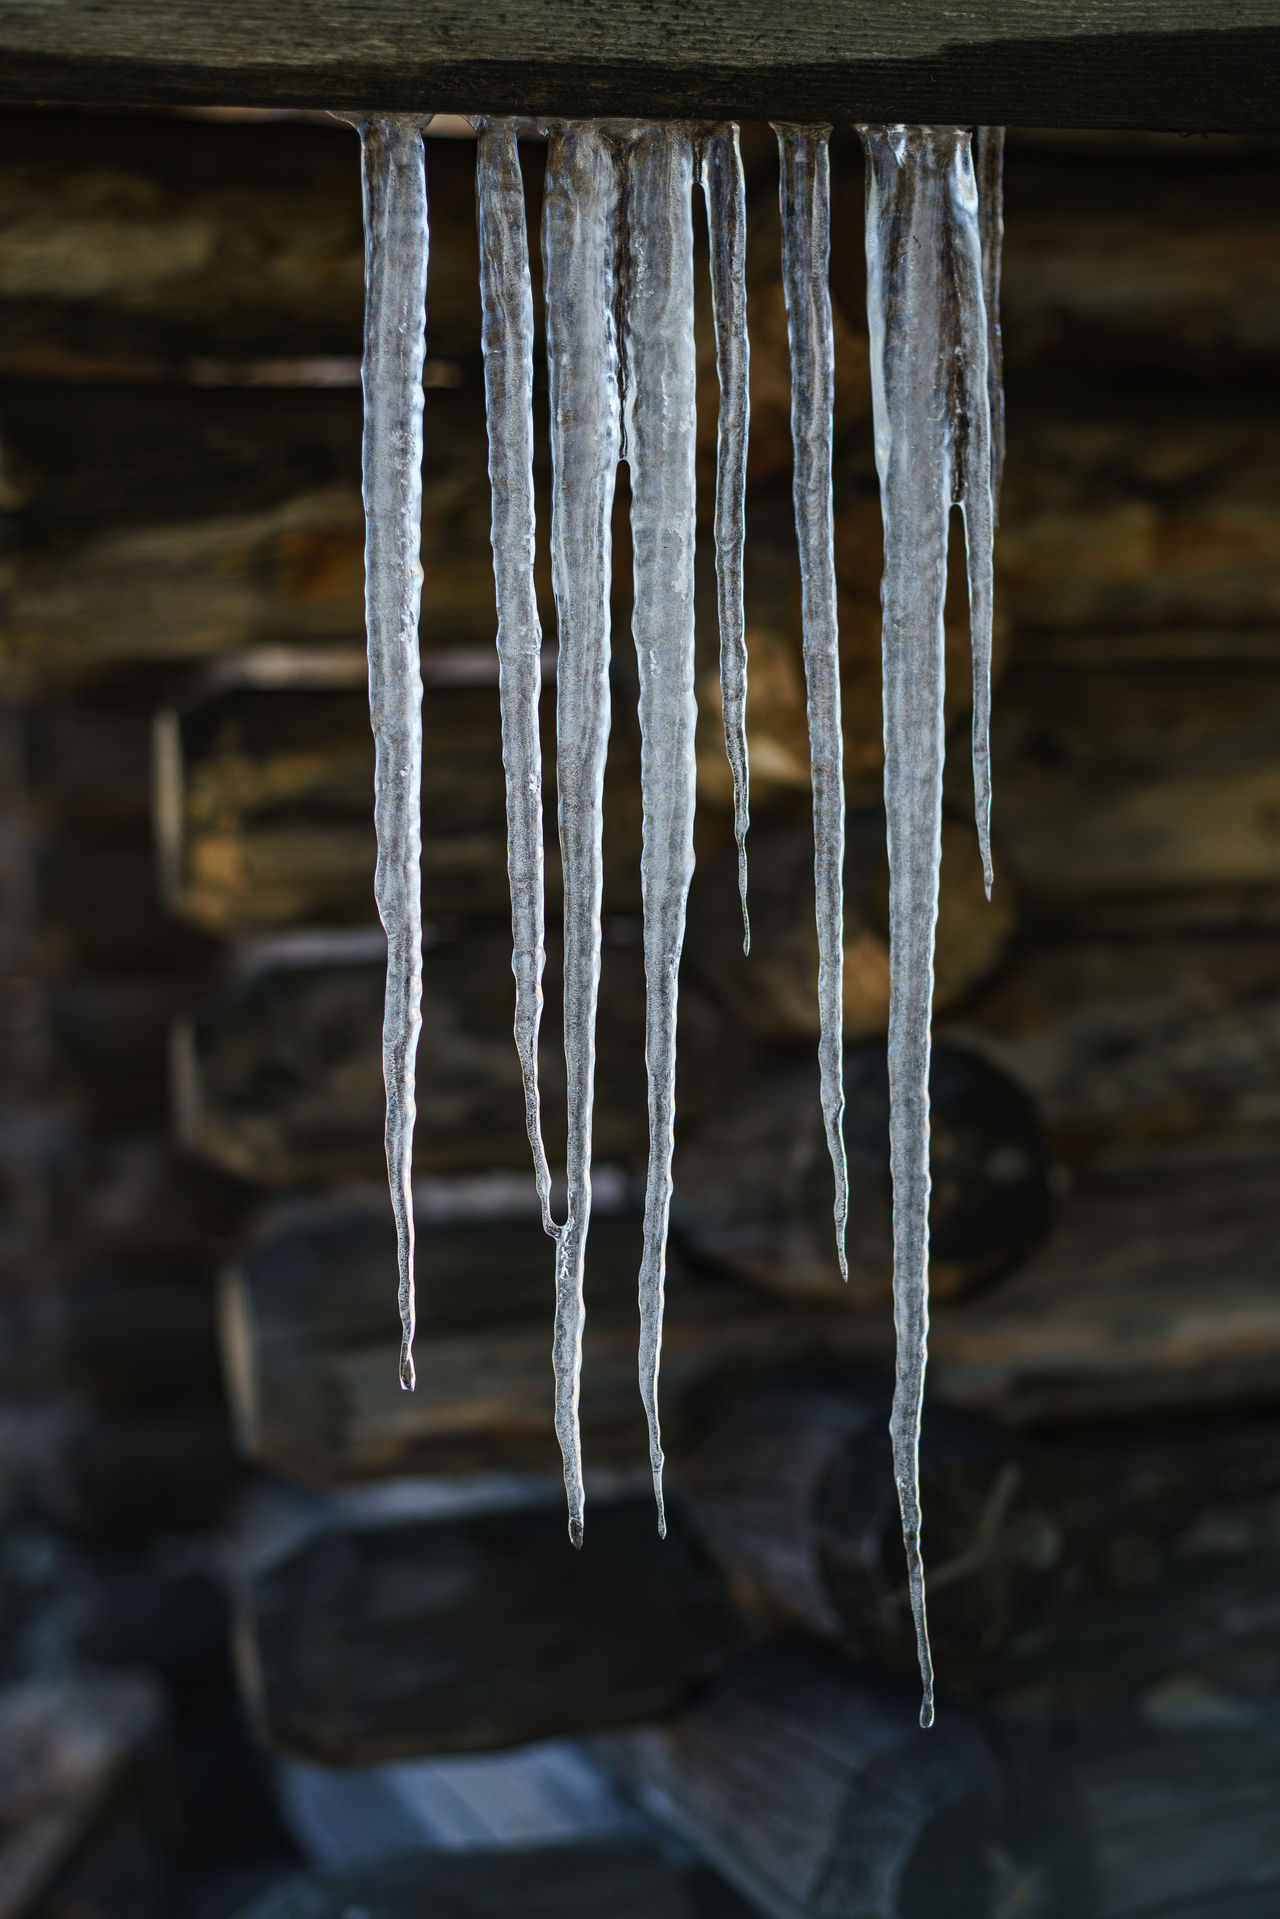 Icicles on an old wood cabin in Alto Campoo, Cantabria, Spain Cold Cool Frozen Ice Icicles Log Cabin Low Key Lighting Minimal Nature Simple Vertical Water Weather Winter